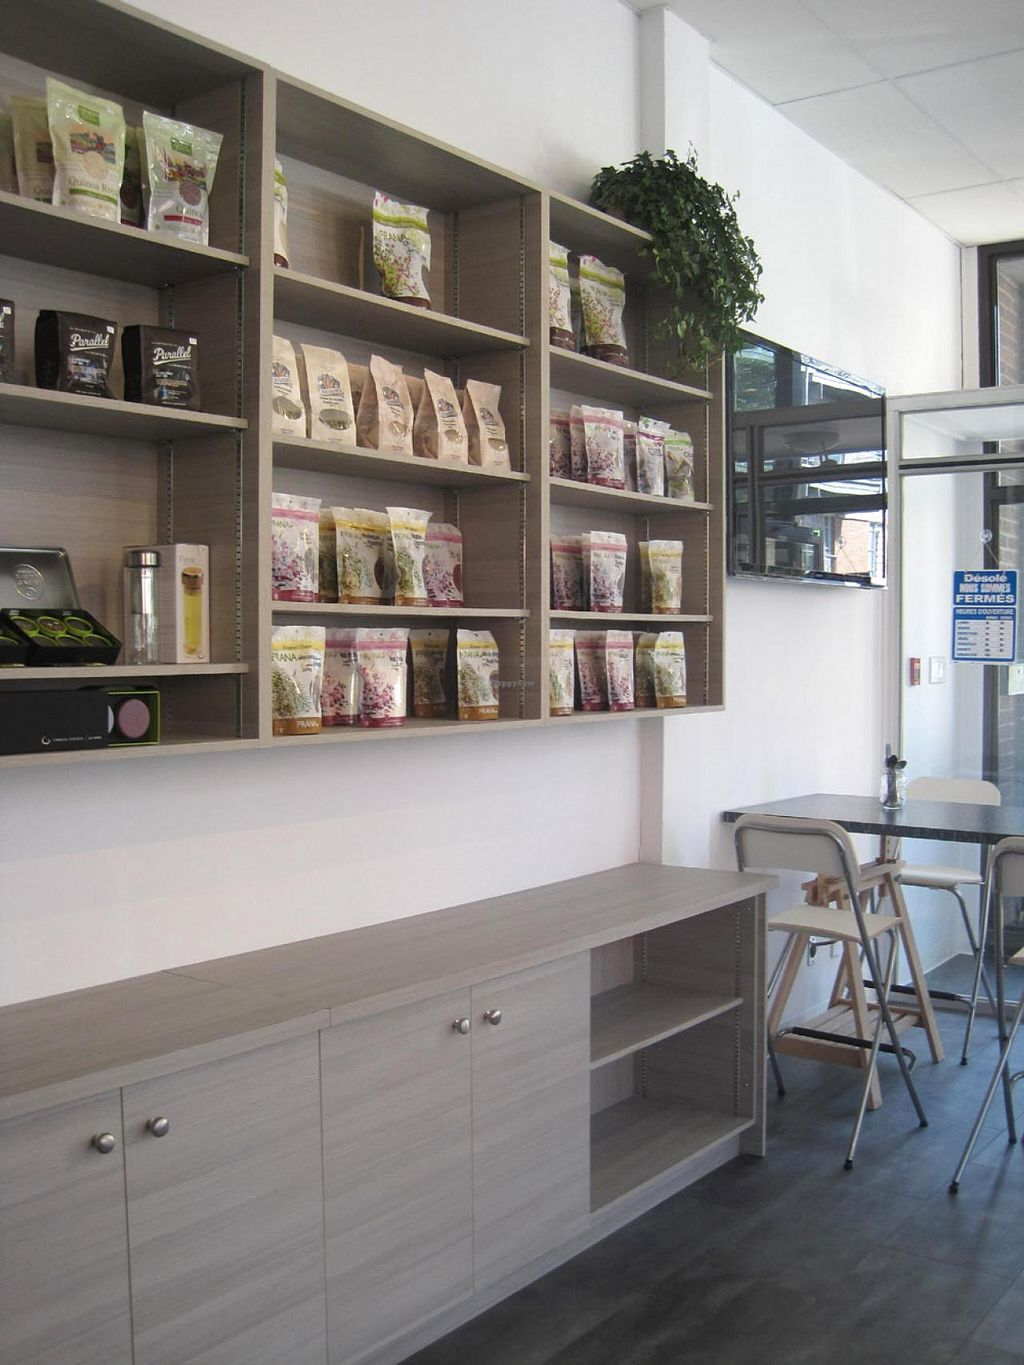 """Photo of CLOSED: Cafe Nutrimania  by <a href=""""/members/profile/Babette"""">Babette</a> <br/>Products <br/> July 21, 2015  - <a href='/contact/abuse/image/51008/110338'>Report</a>"""